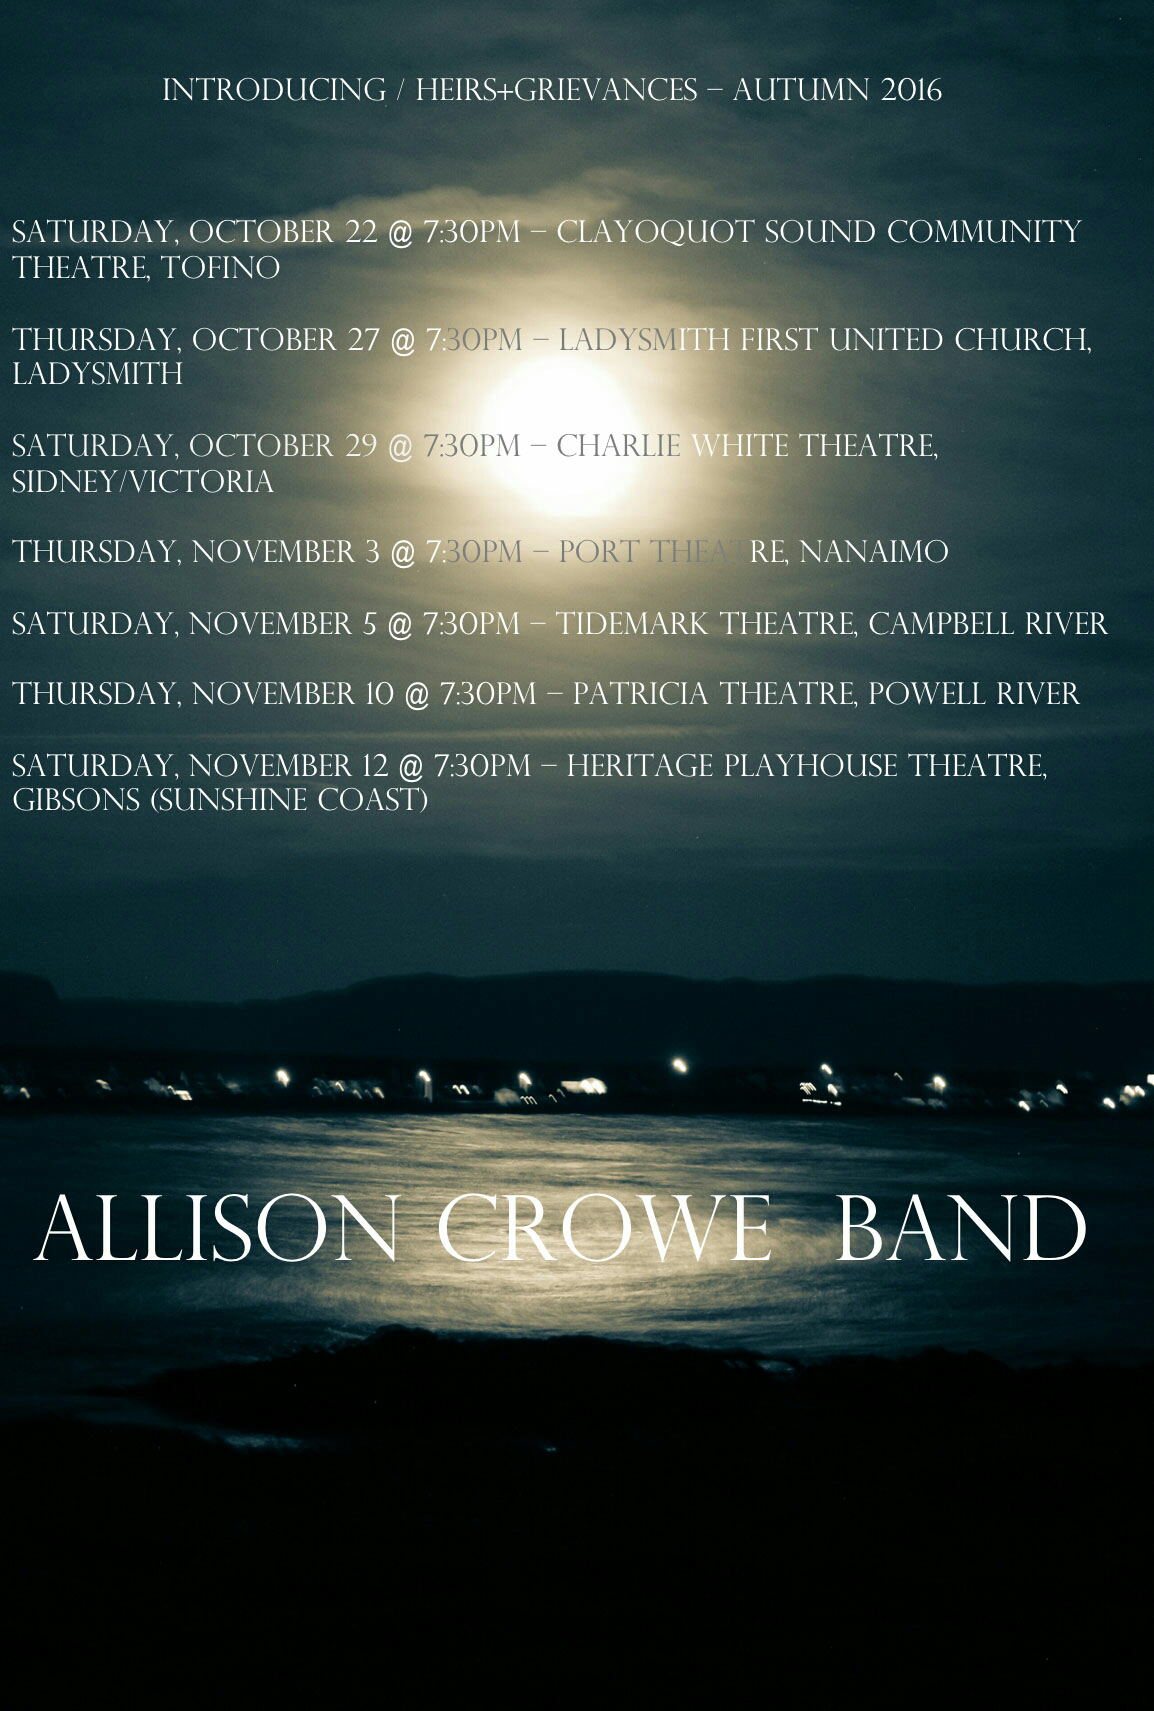 Allison Crowe and Band - Autumn 2016 Tour - Introducing / Heirs+Grievances